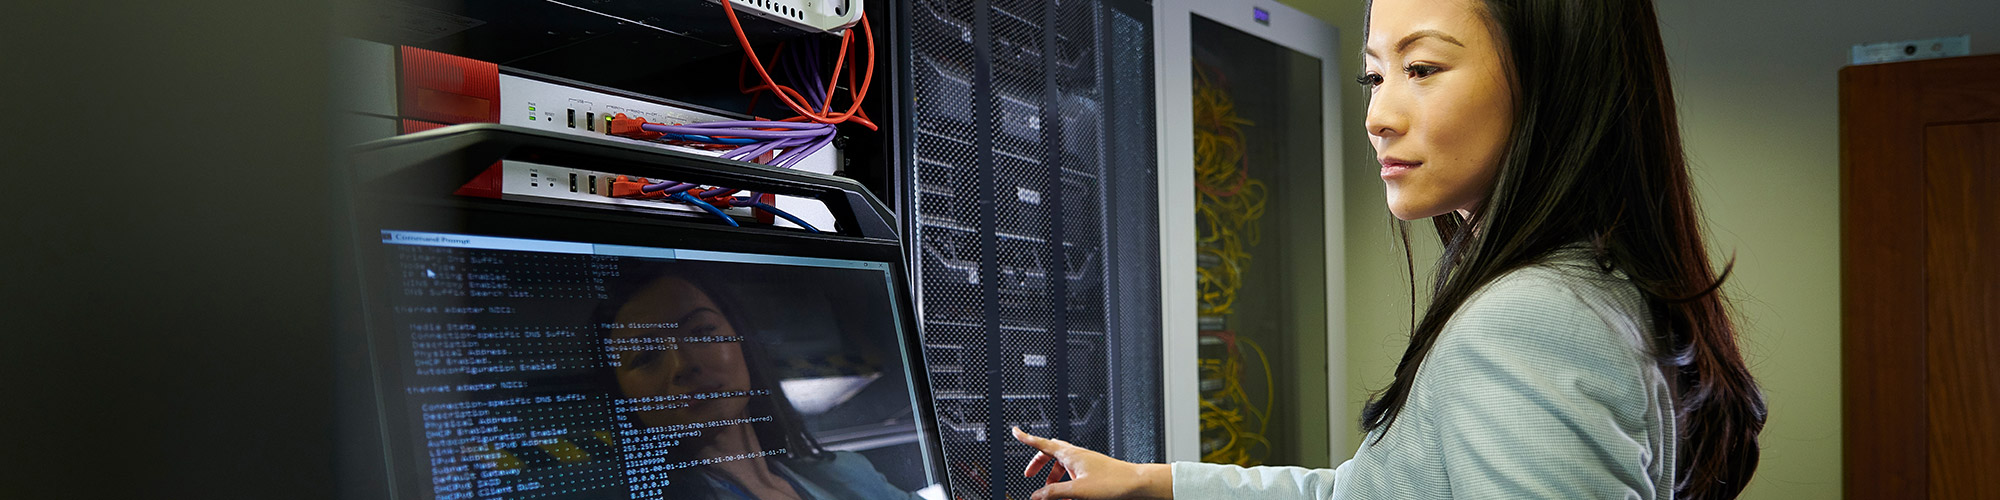 Woman looking at HTML code on a screen in a data center